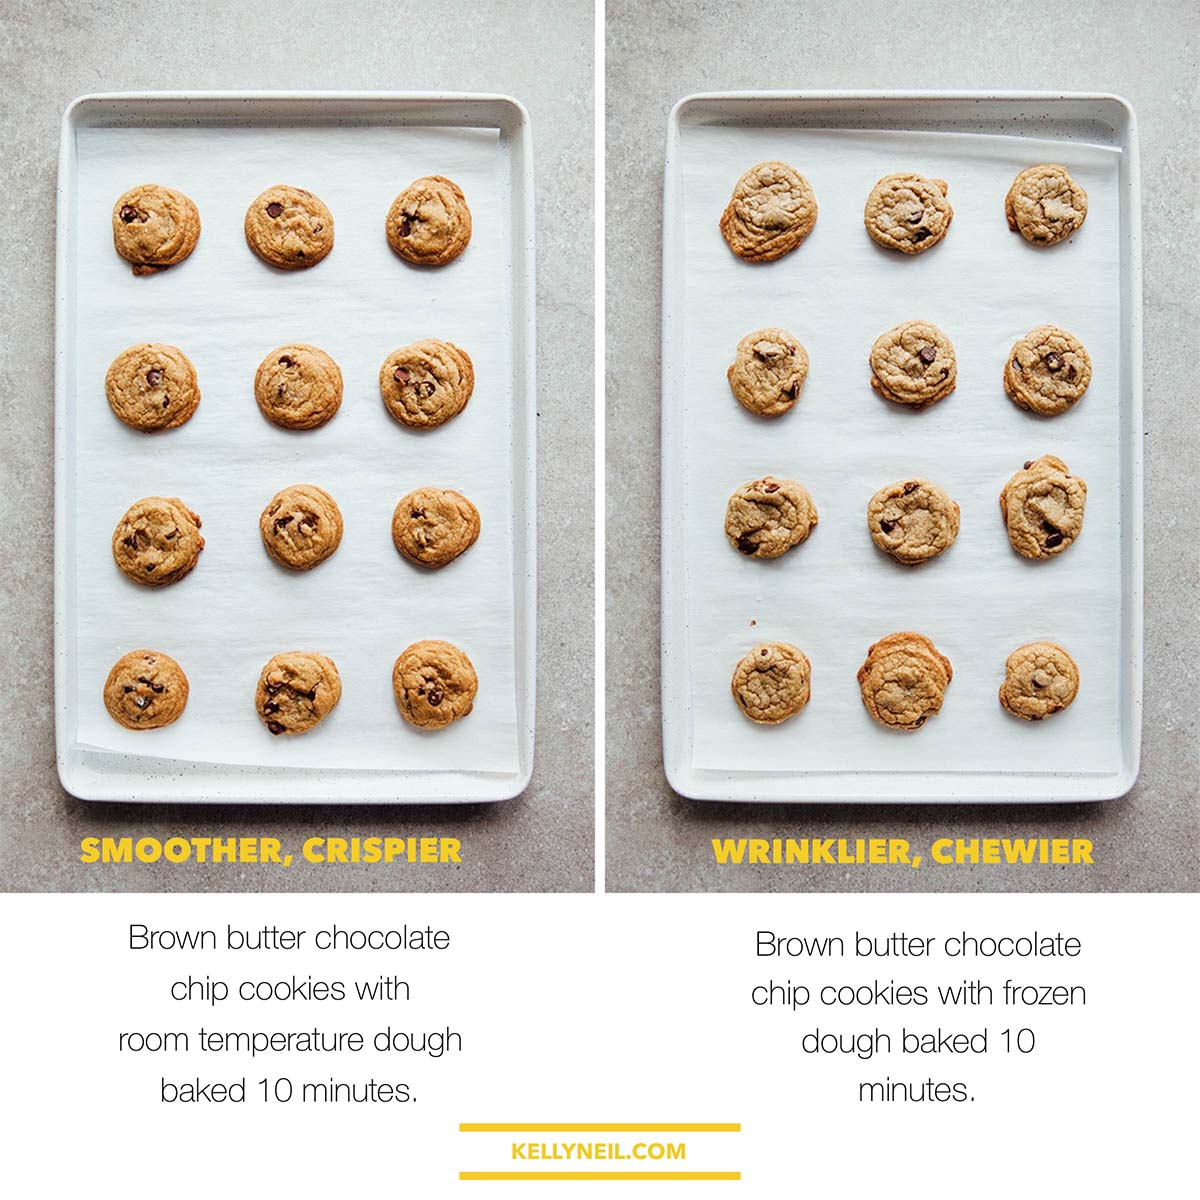 A side by side comparison of cookies baked with room temperature dough, and frozen dough.